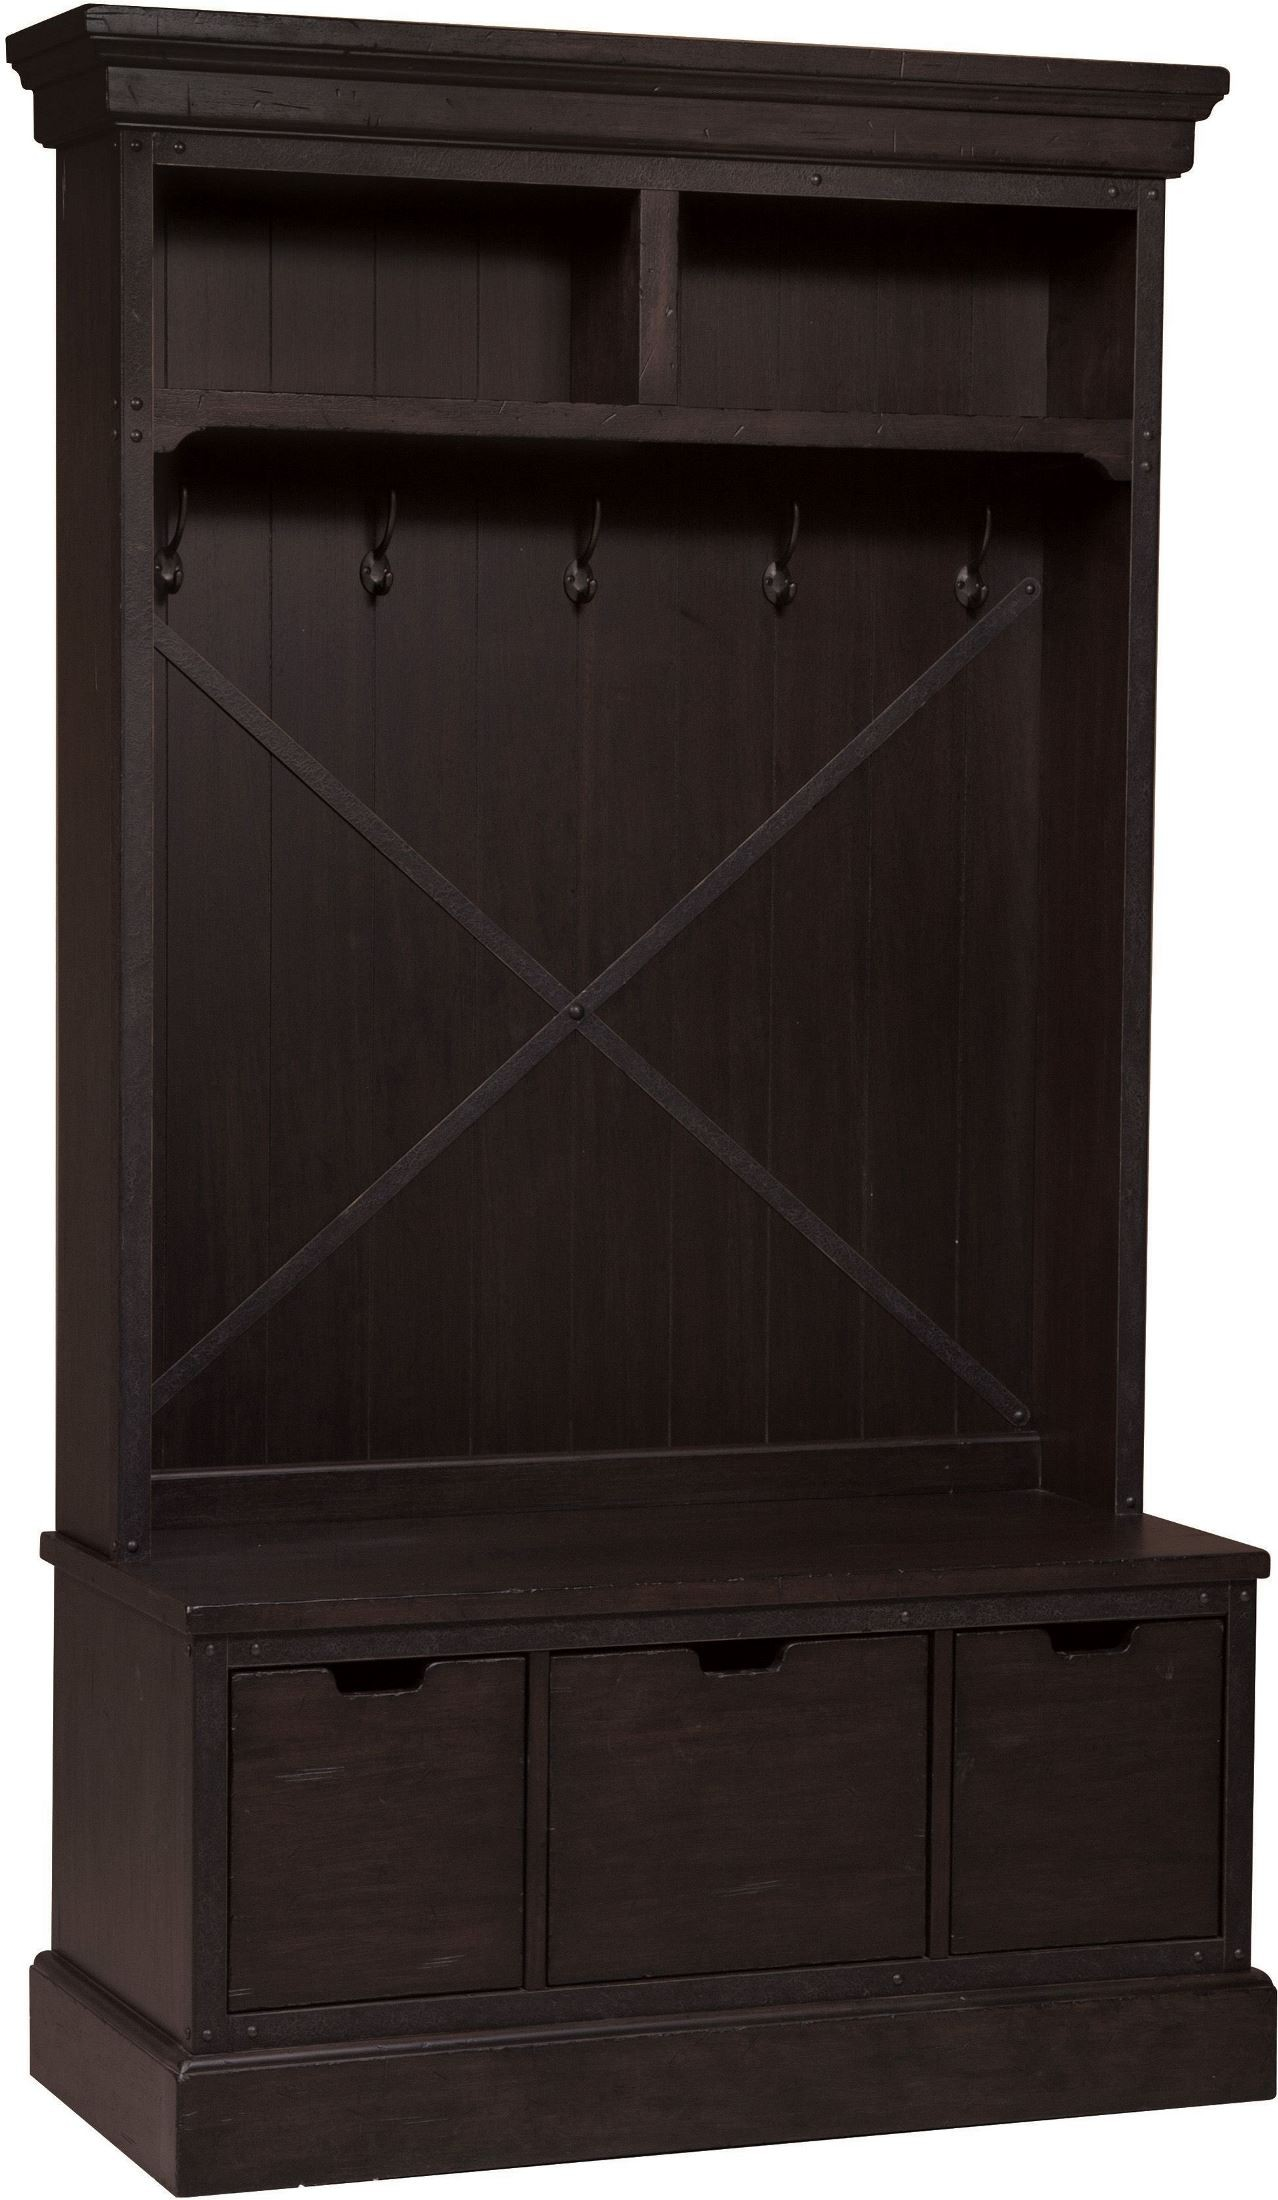 Fulton St. Brown Entryway Storage Bench From Samuel Lawrence | Coleman  Furniture